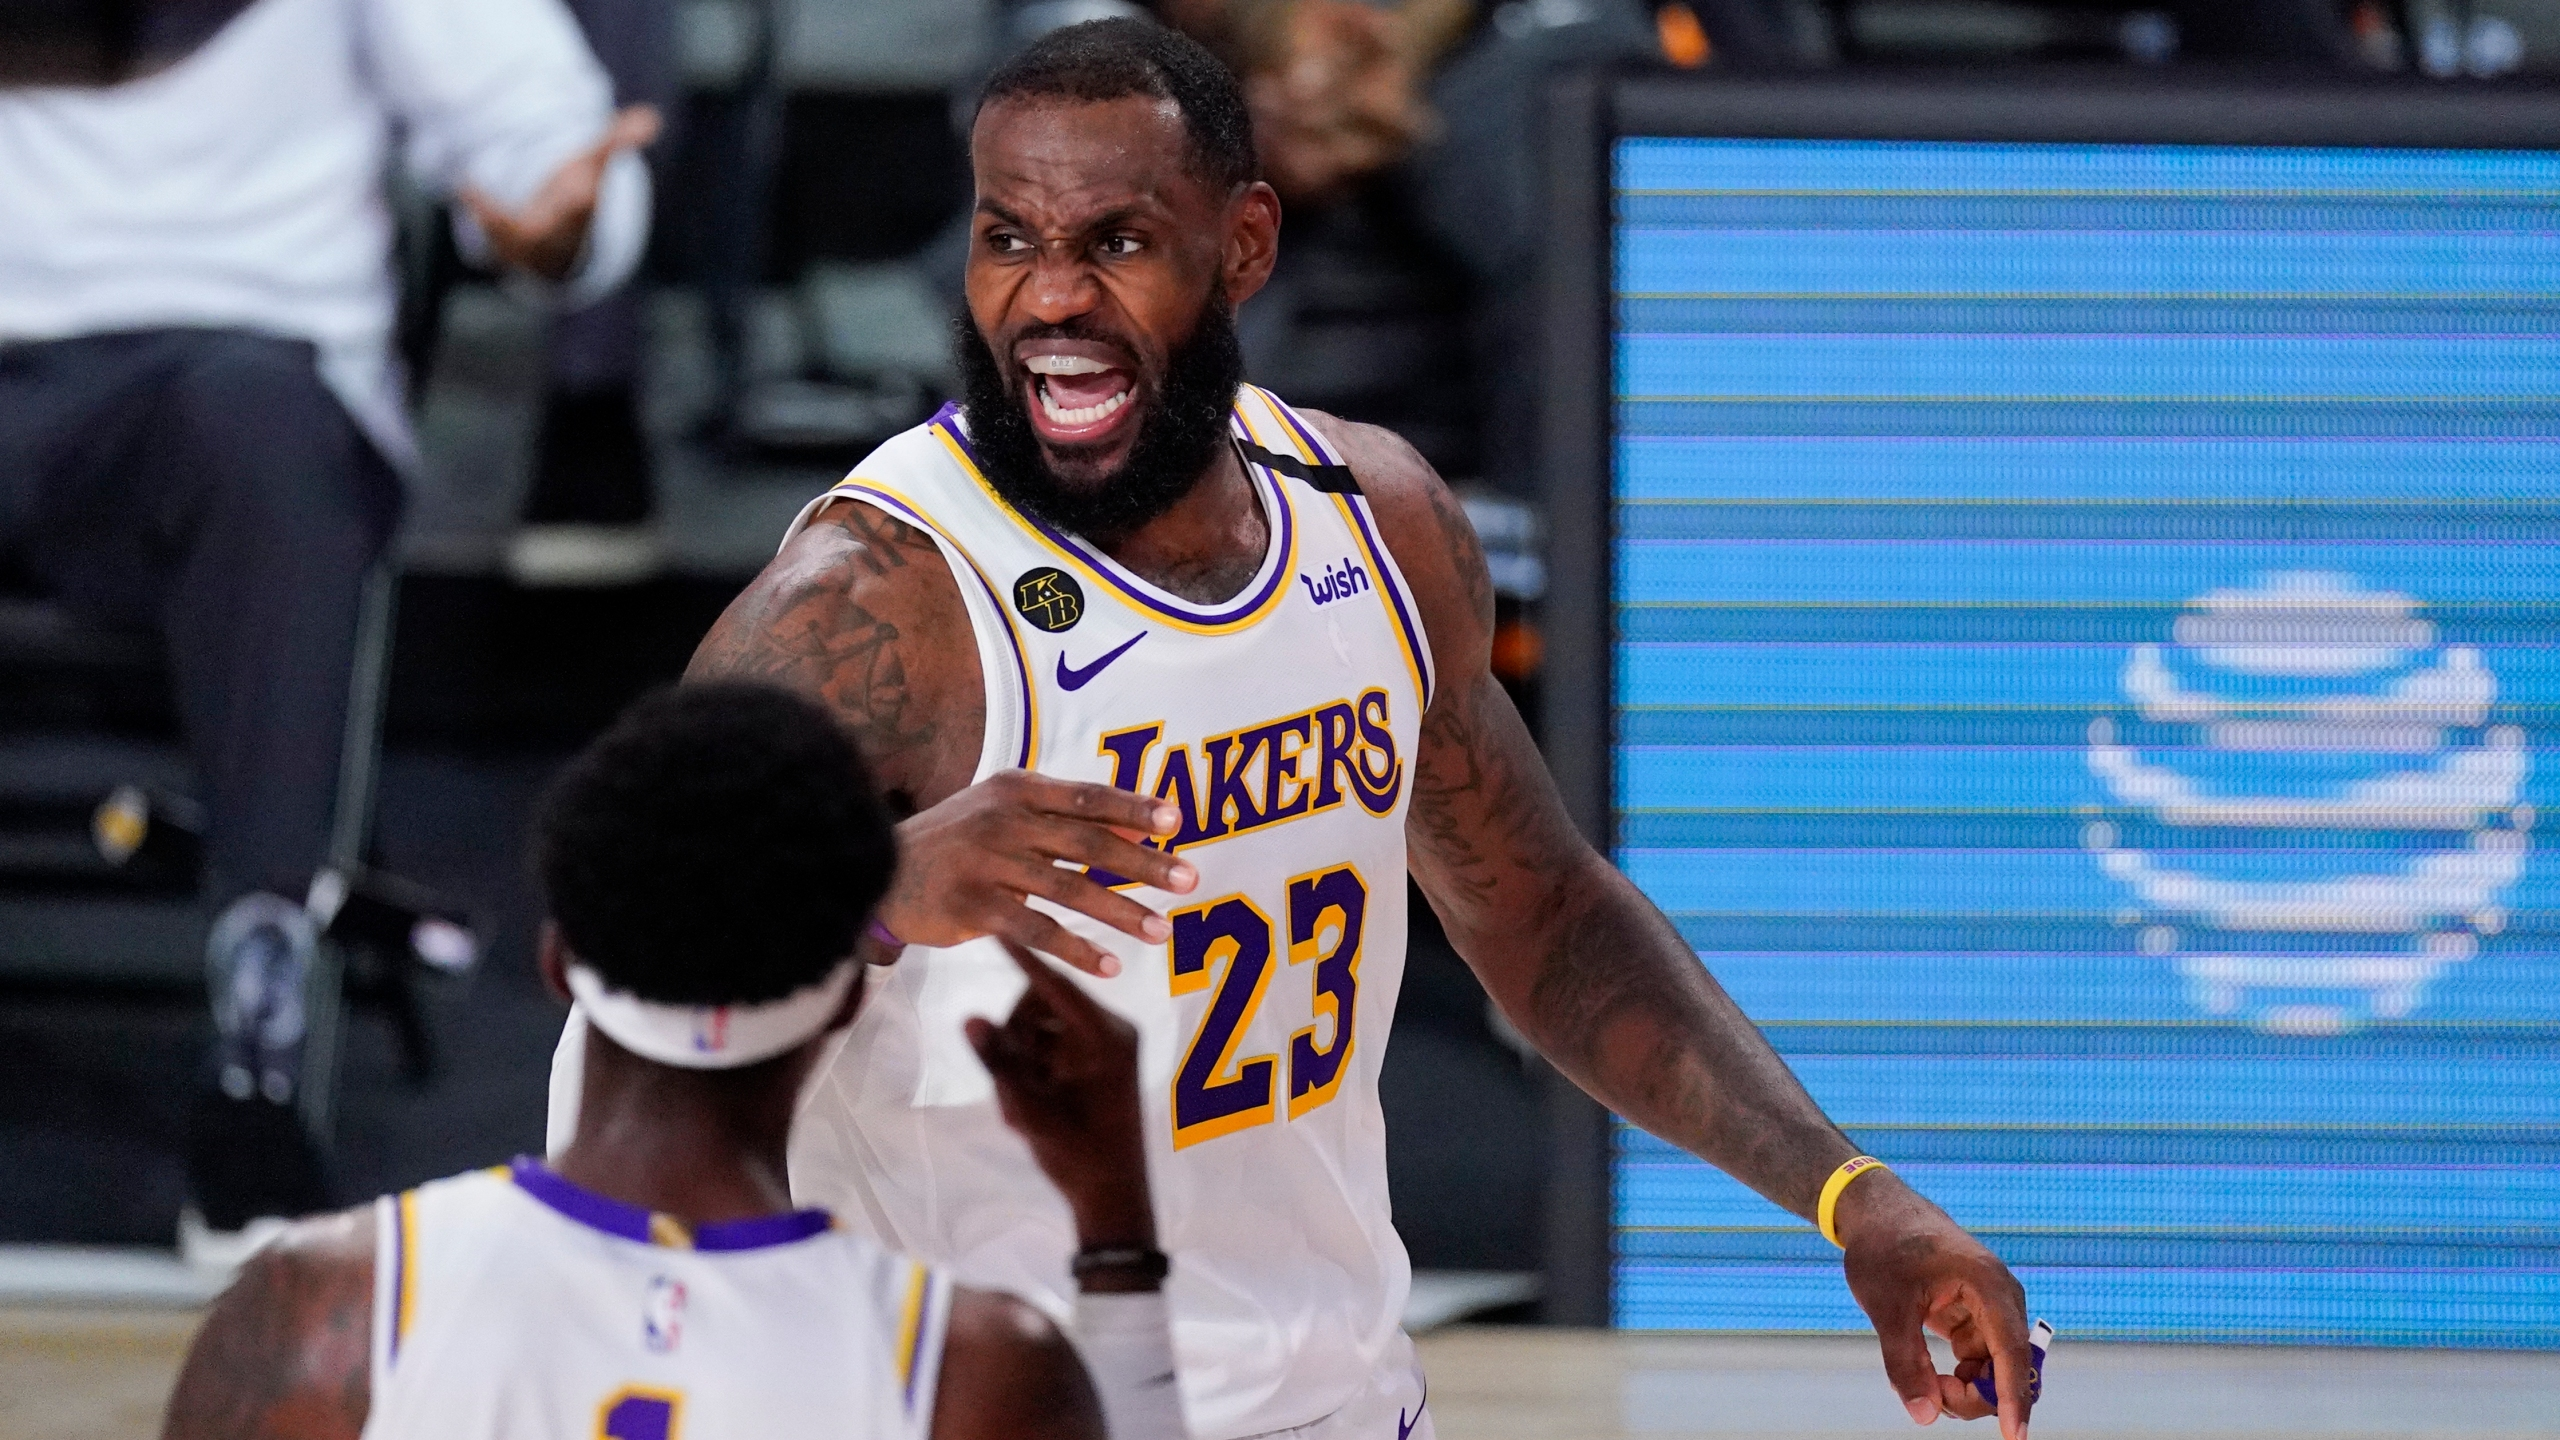 Lebron Rondo Spark Lakers To 112 102 Victory Over Rockets Cbs17 Com